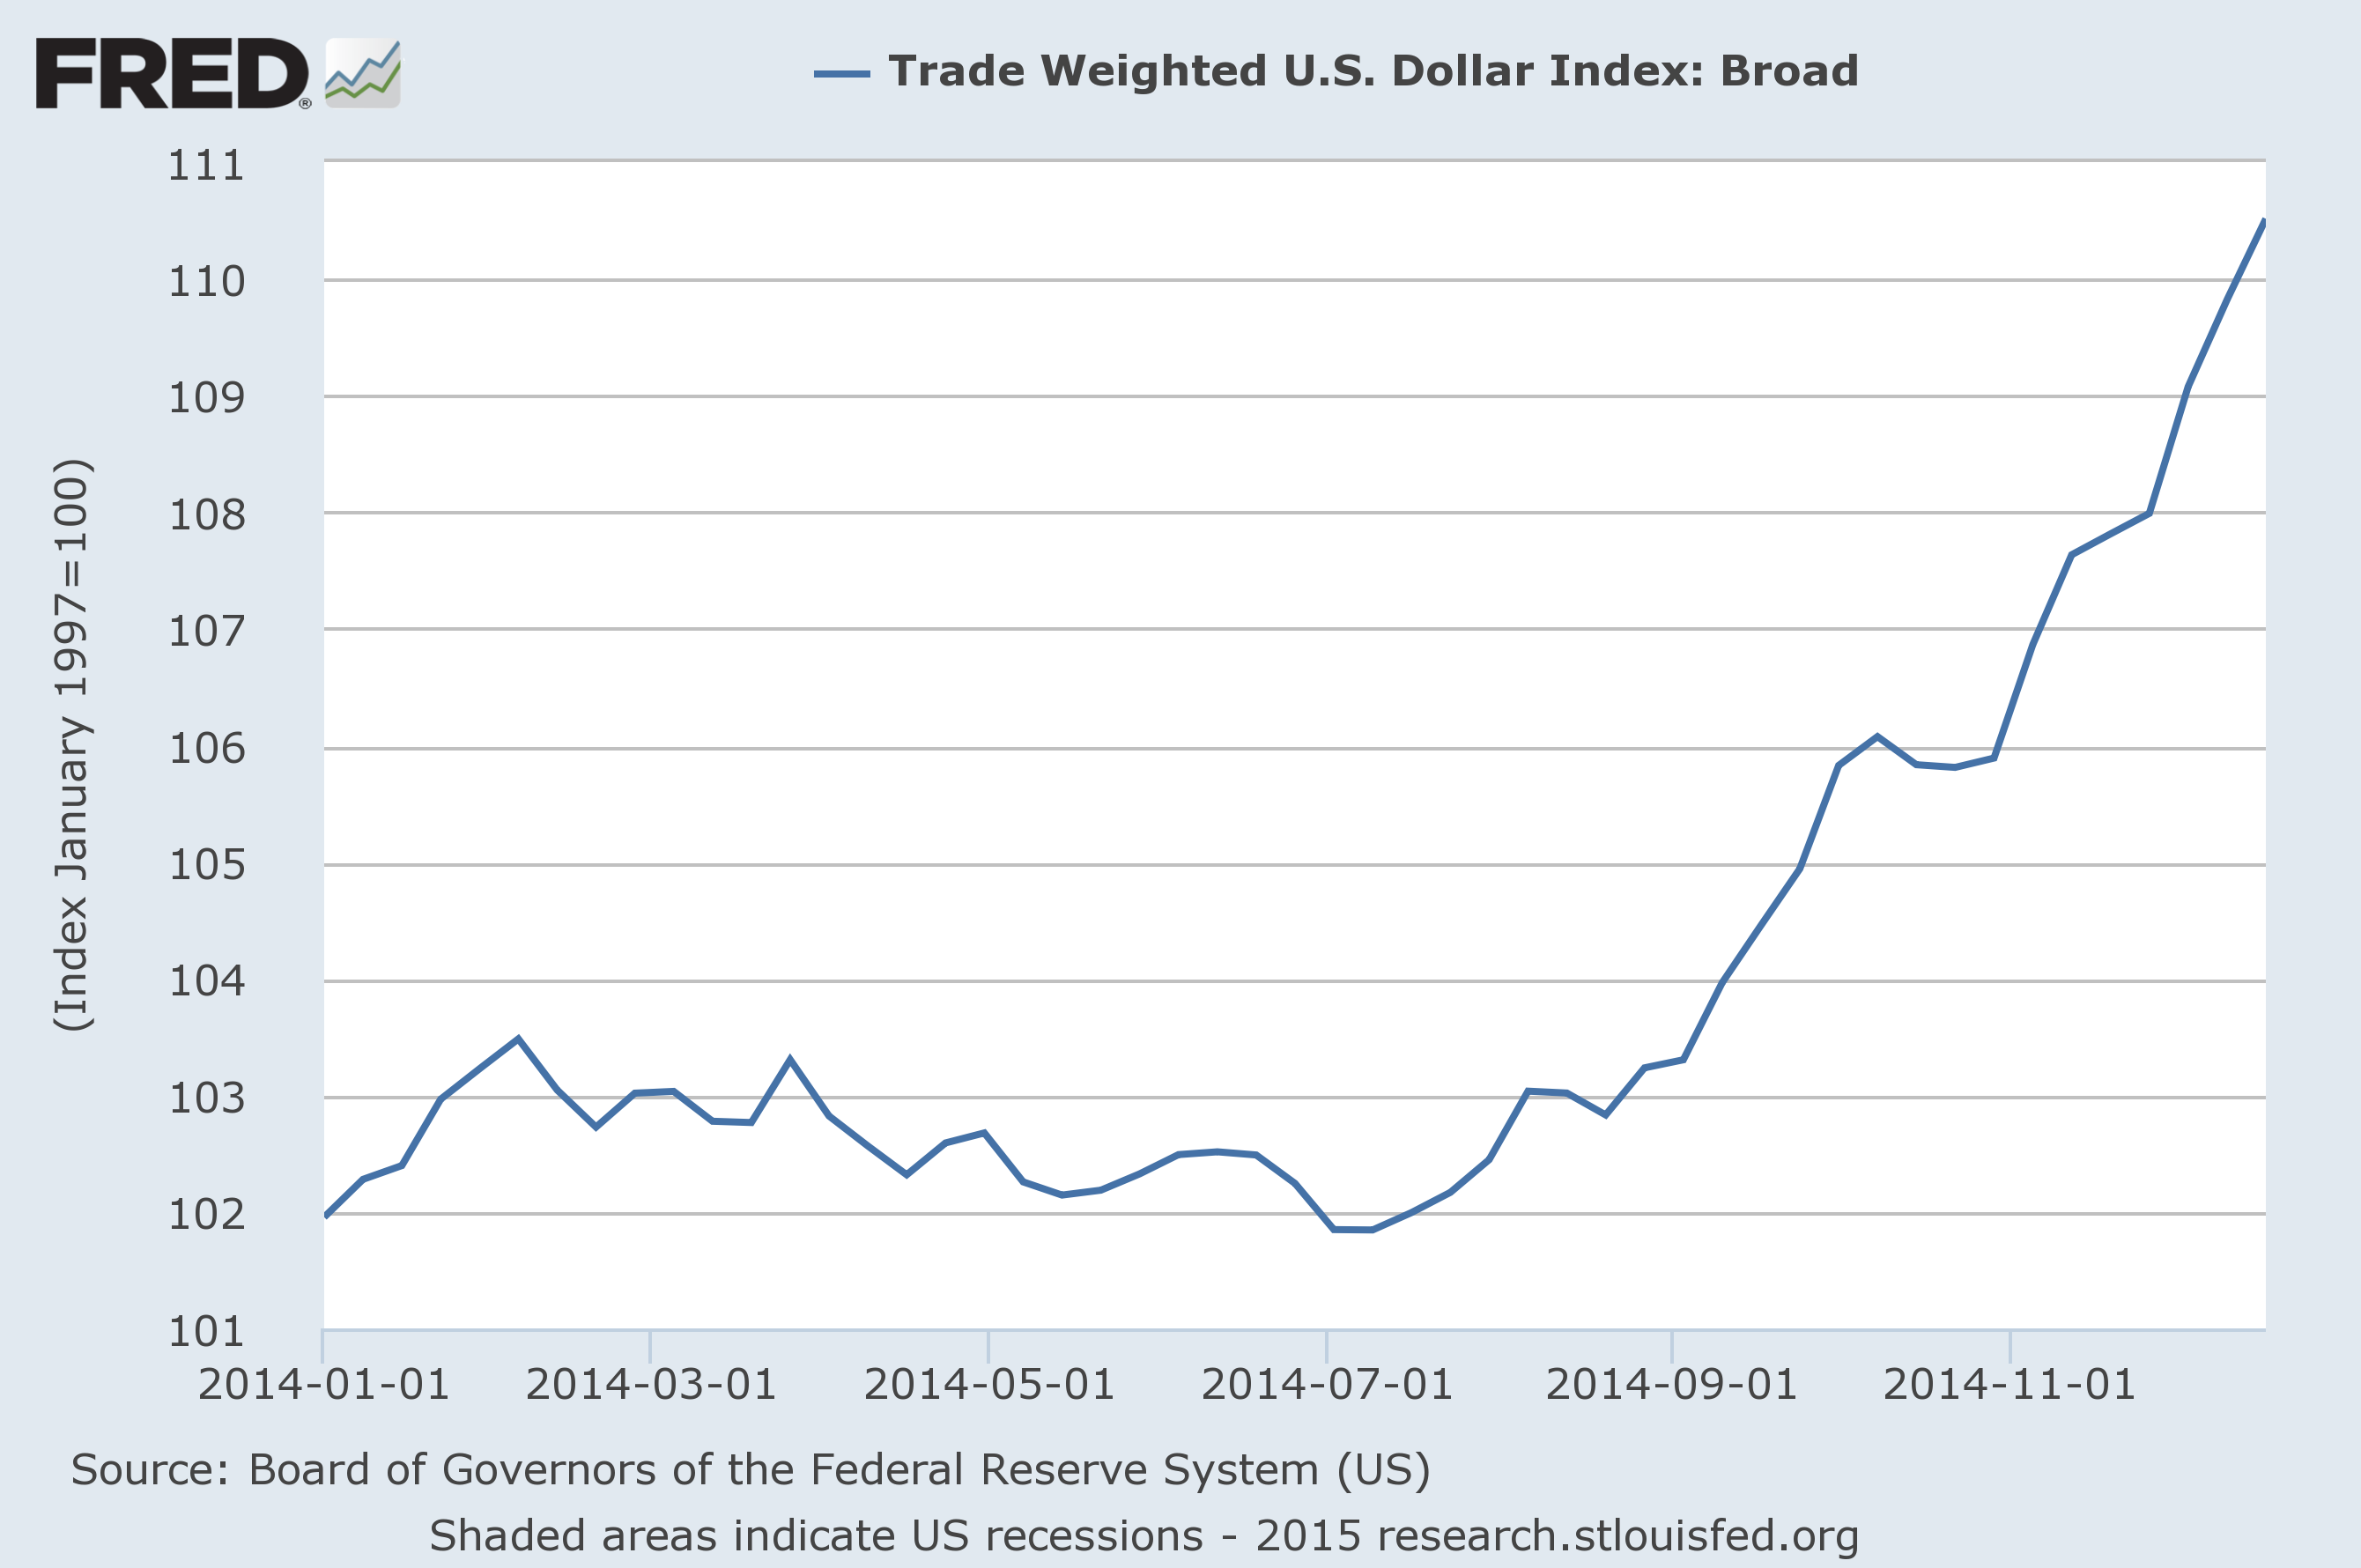 Trade Weighted U.S. Dollar Index Broad Chart